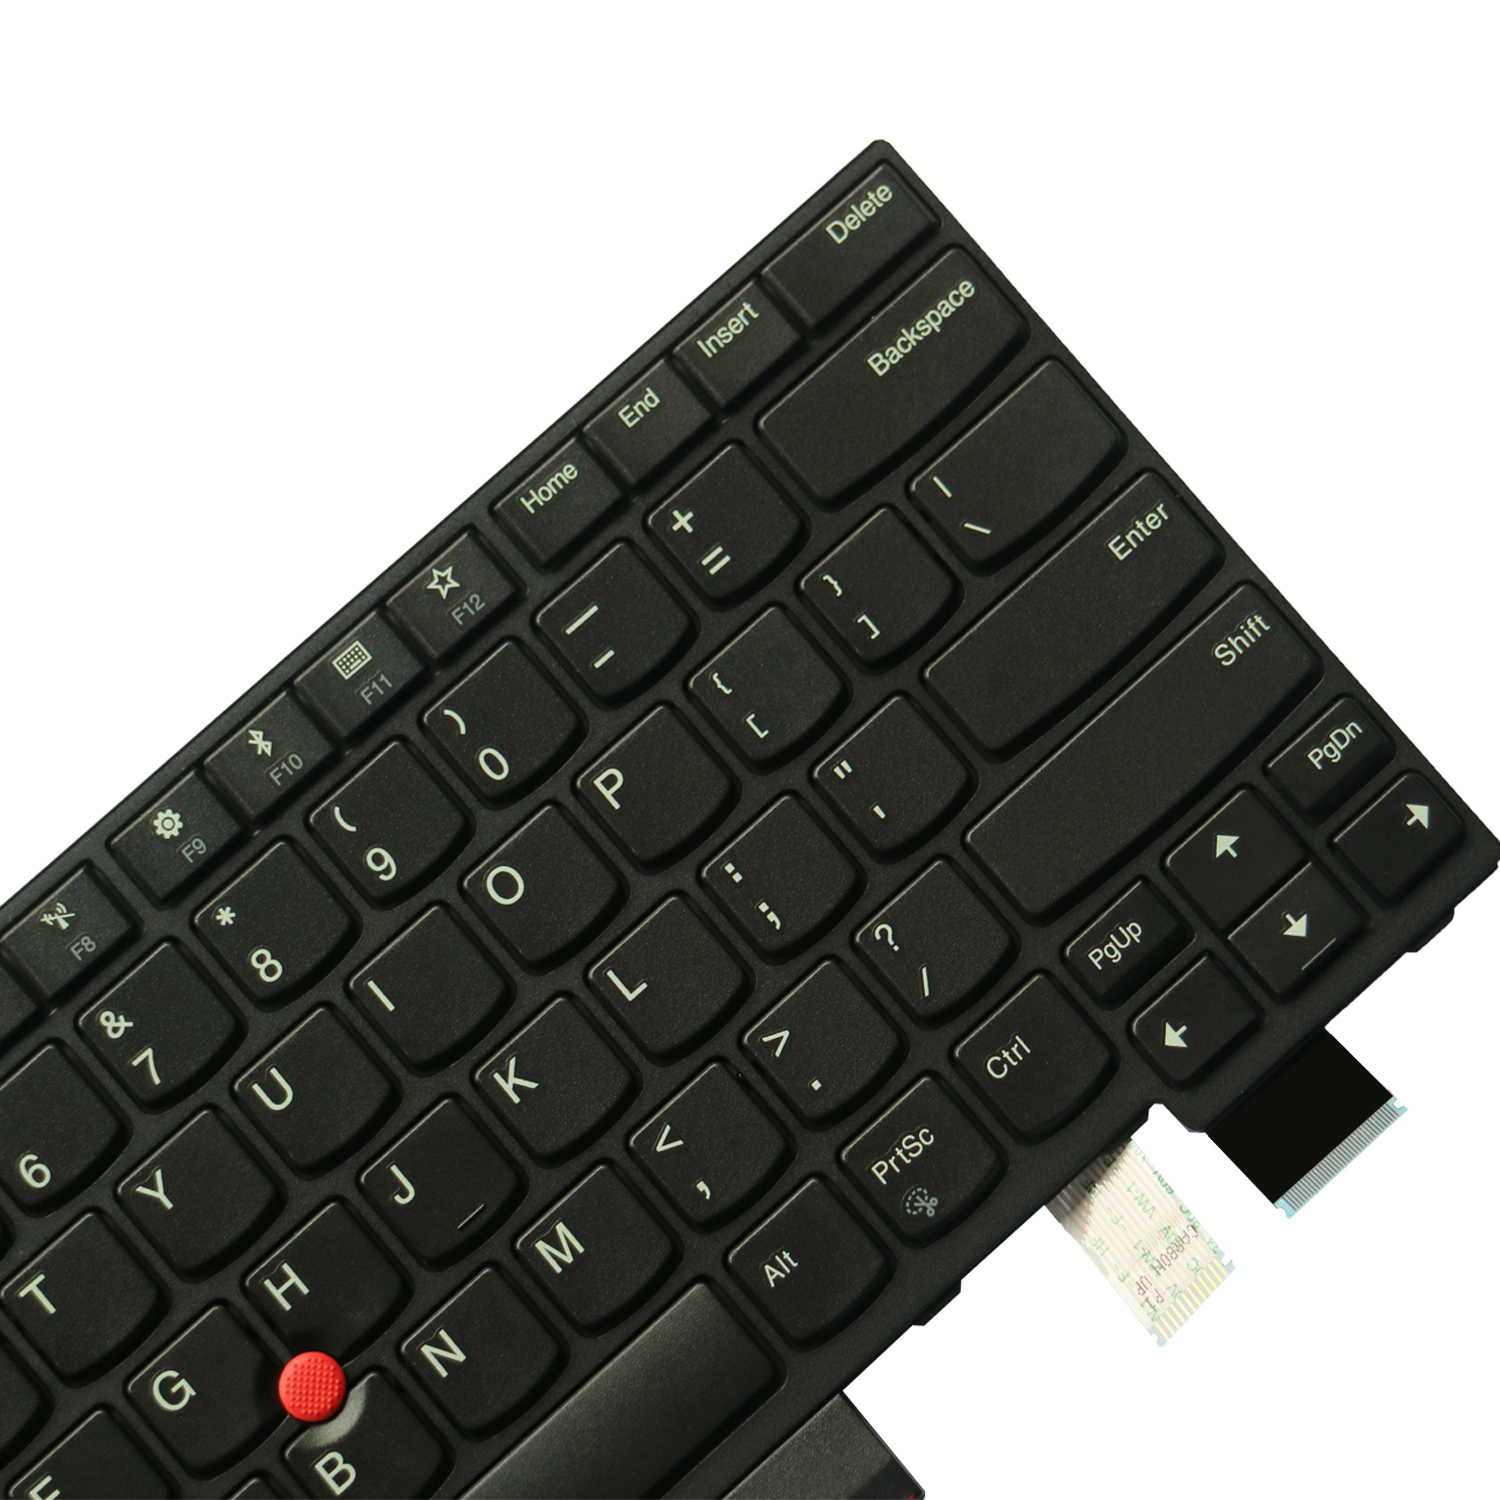 Never Used New Replacement Keyboard for Lenovo Thinkpad T470 T480 with Backlight US Layout